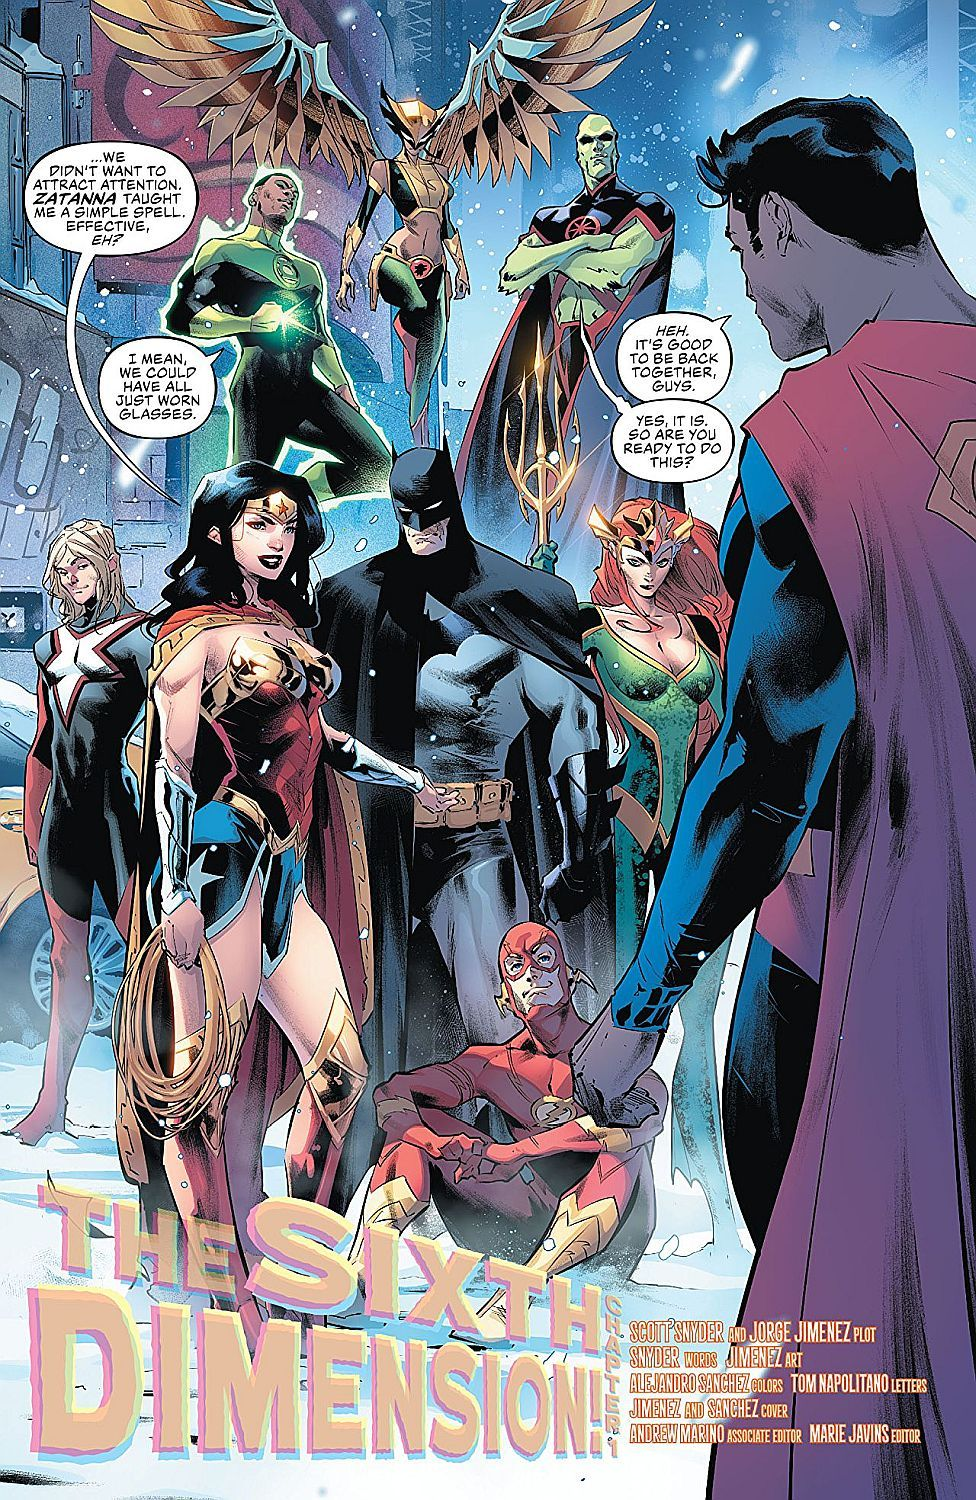 Justice League Vol. 4: The Sixth Dimension - 4